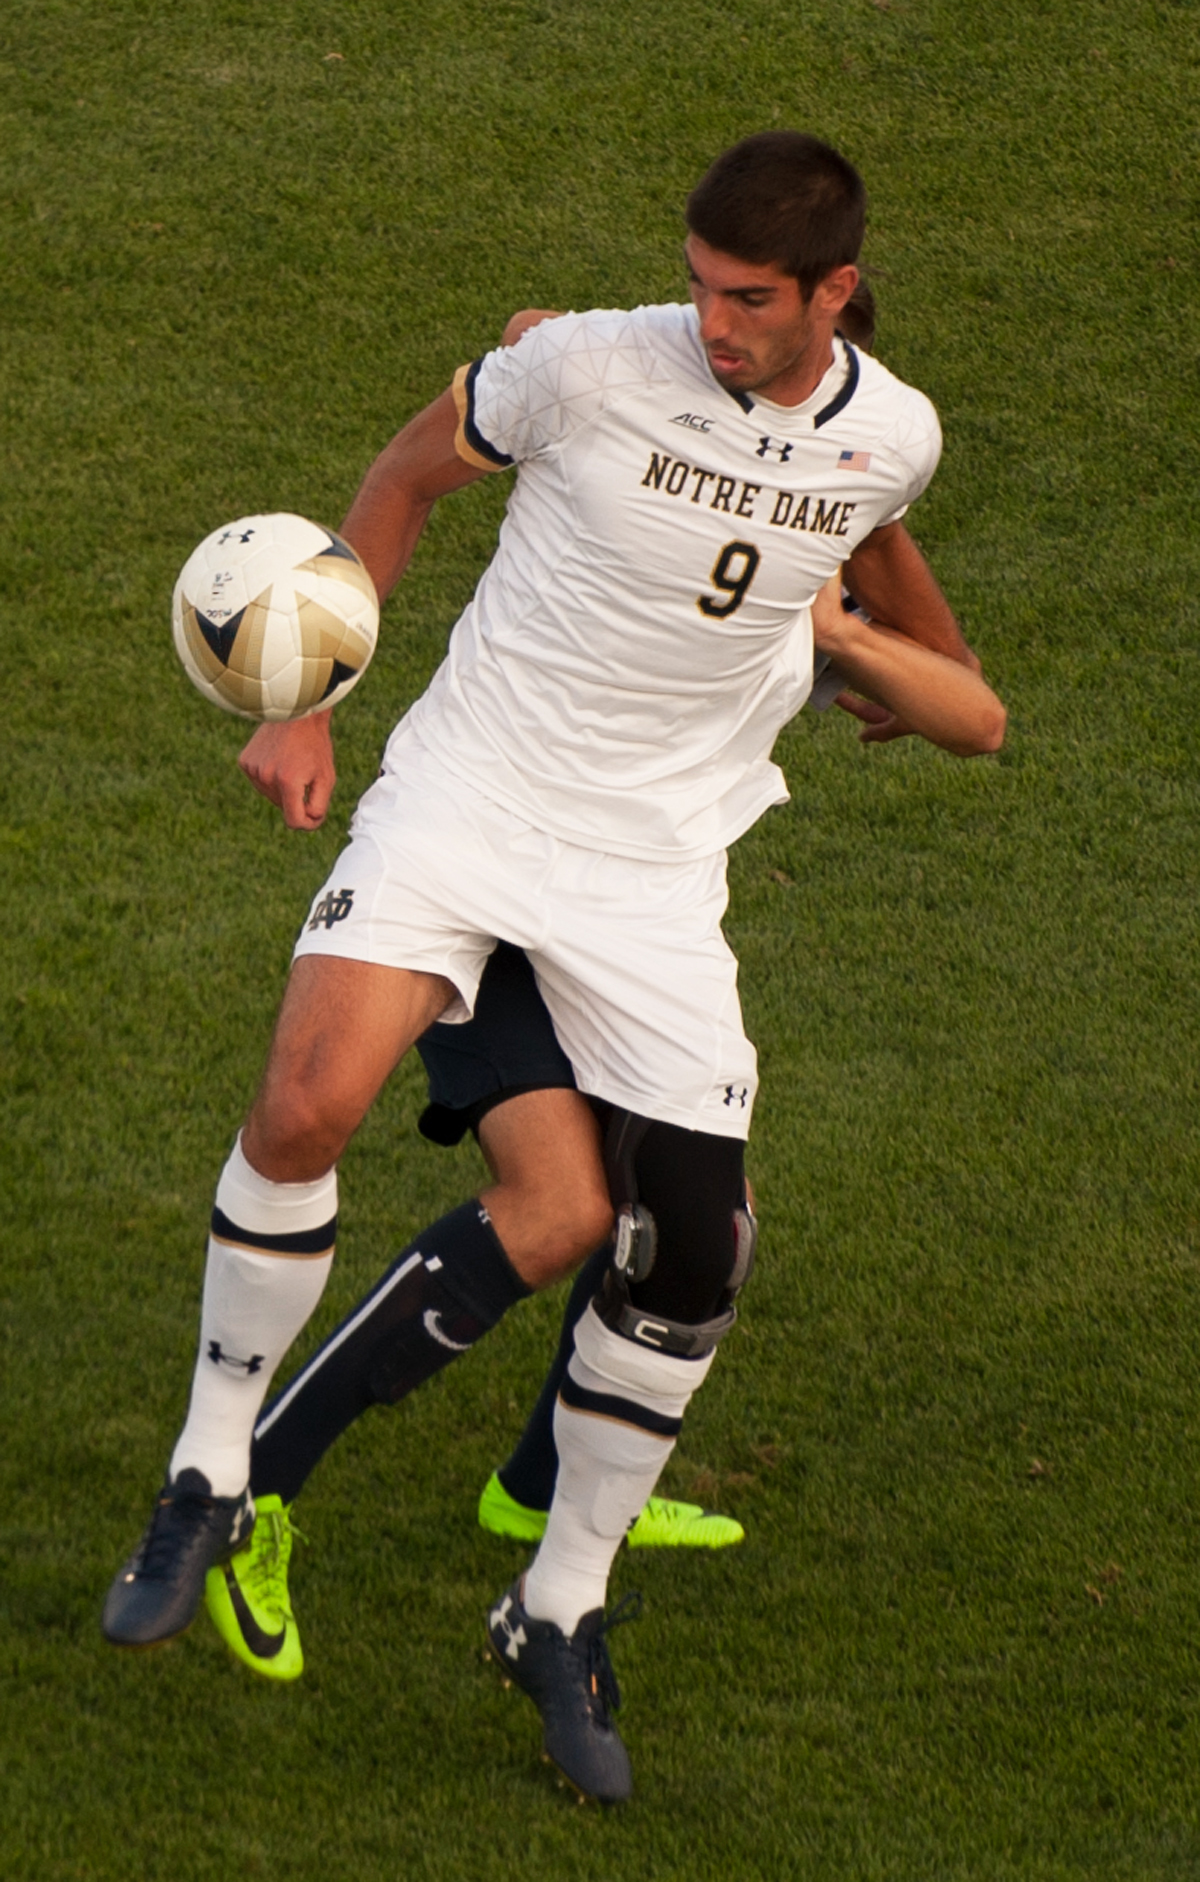 Irish senior forward Jeff Farina maneuvers around a defender during Notre Dame's 2-0 win over San Diego on Aug. 25.